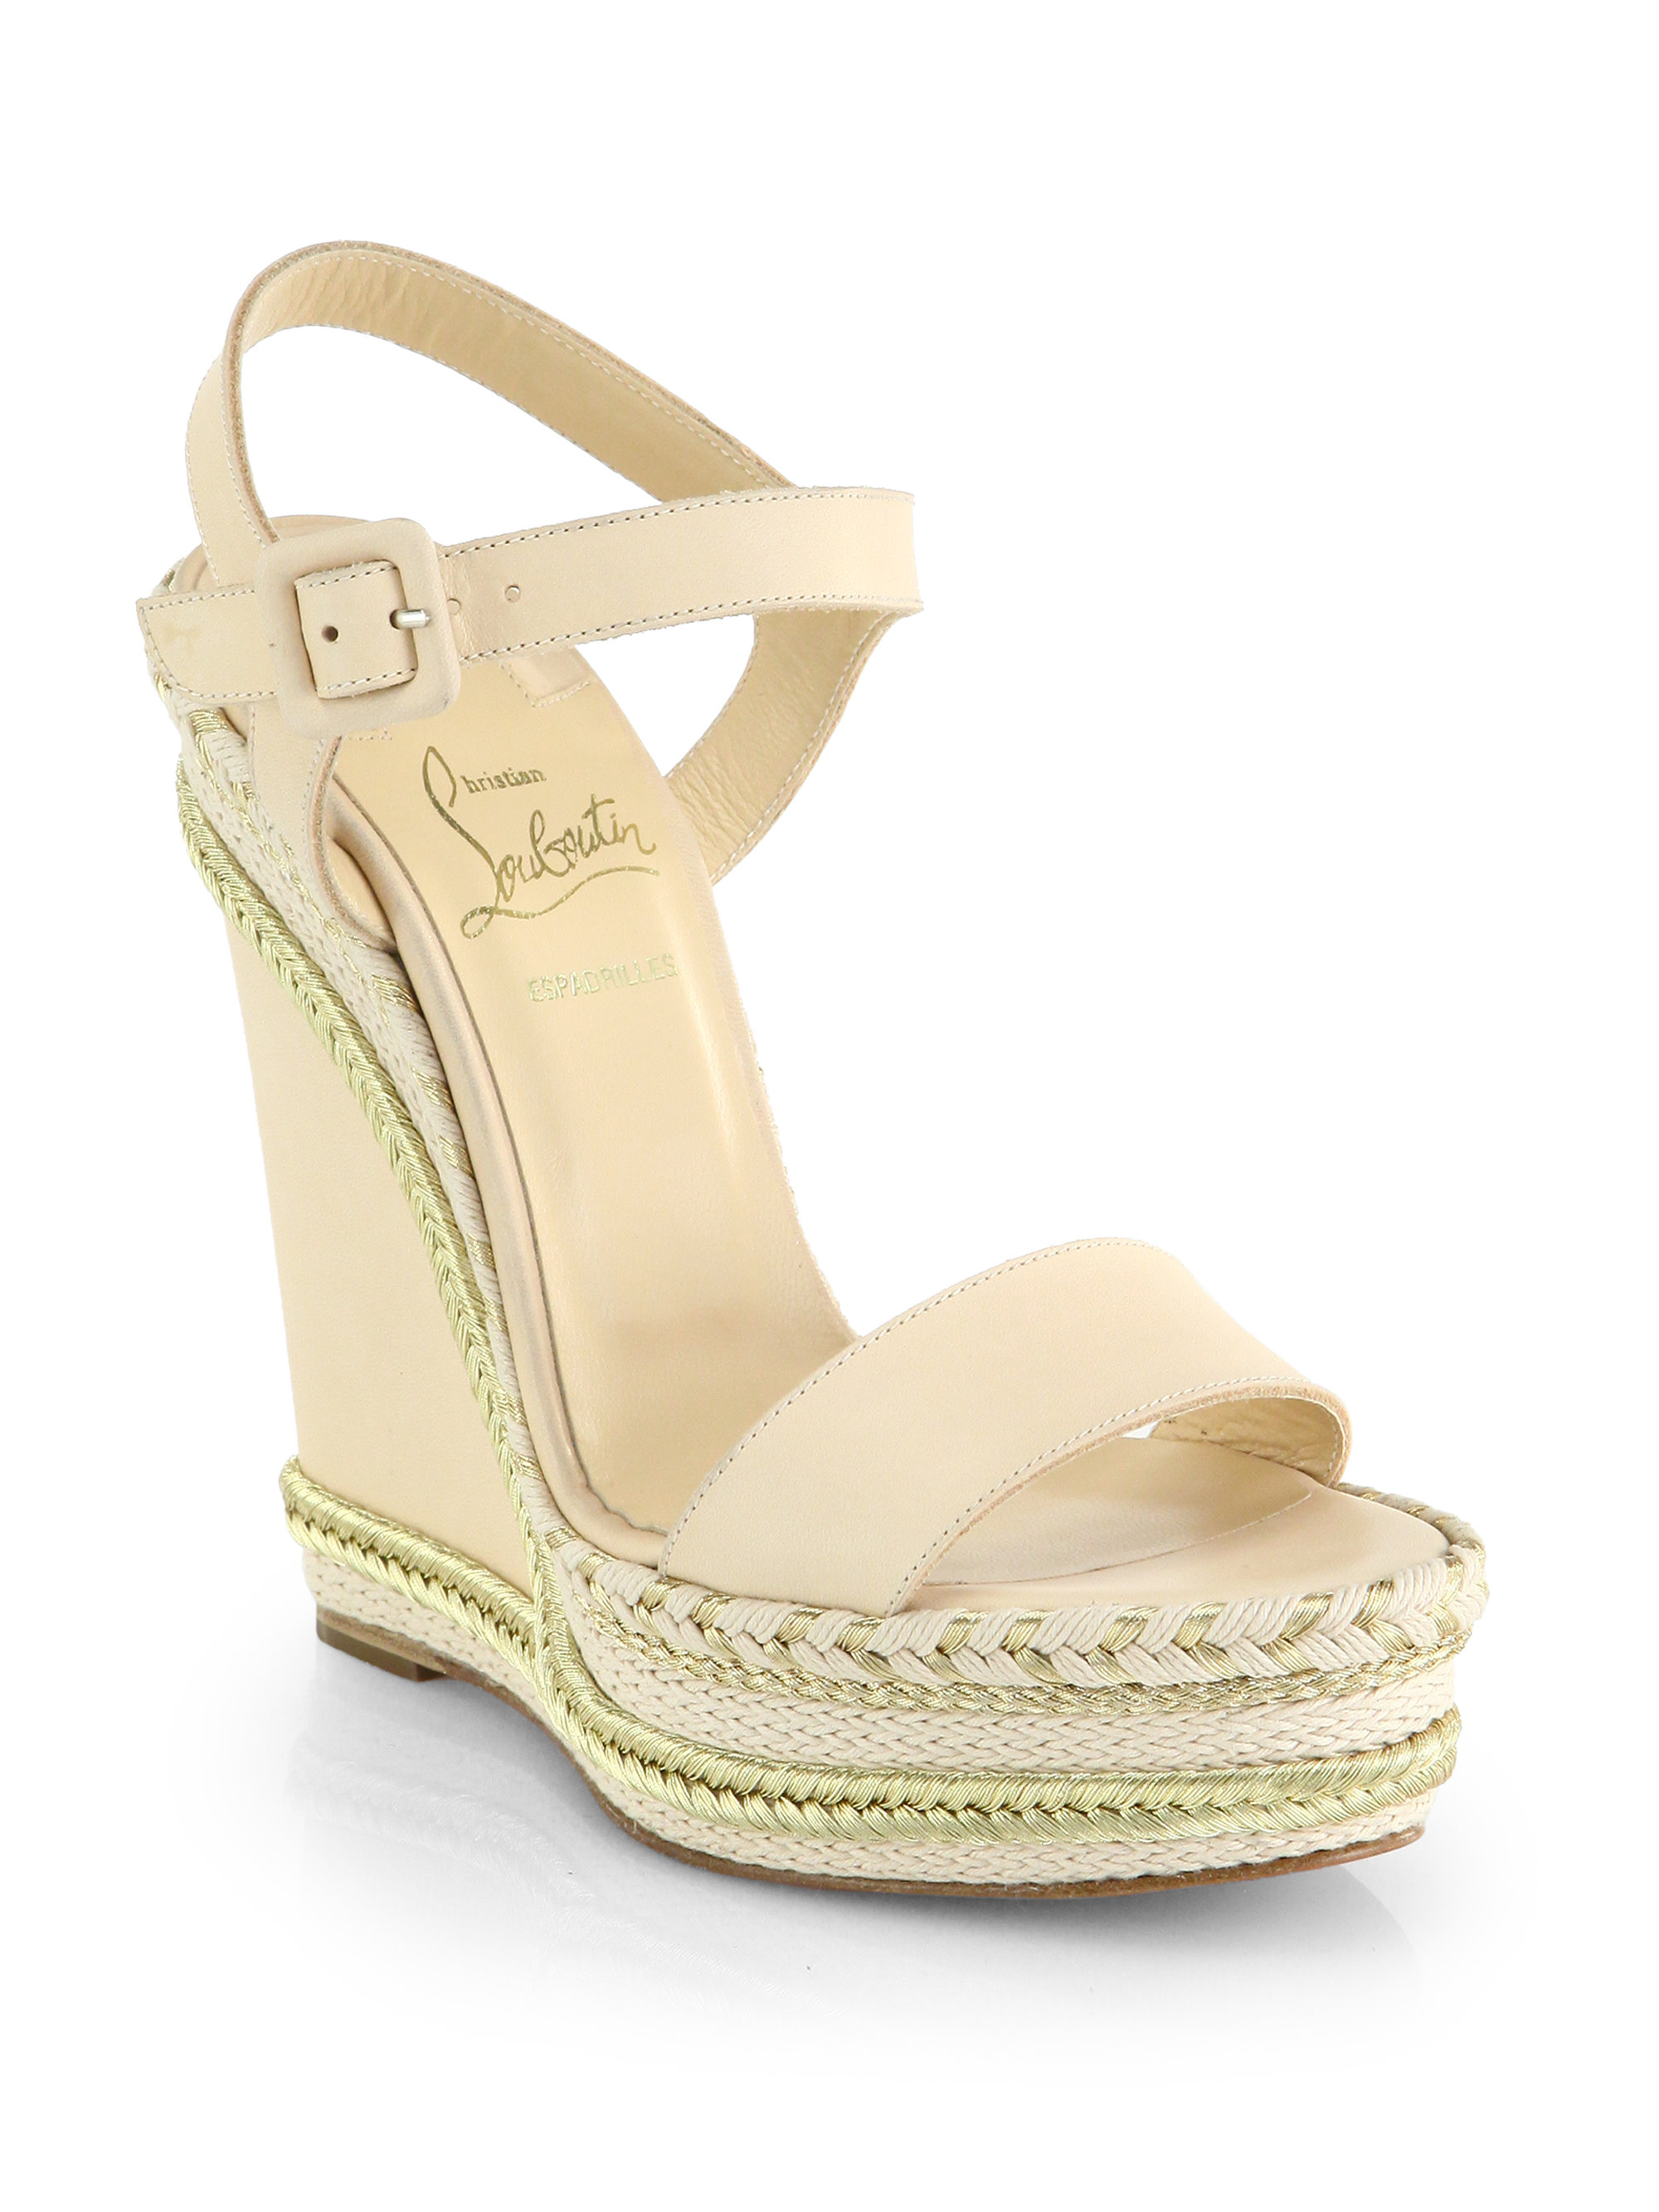 2674c46e83c Lyst - Christian Louboutin Duplice Leather Espadrille Wedge Sandals ...